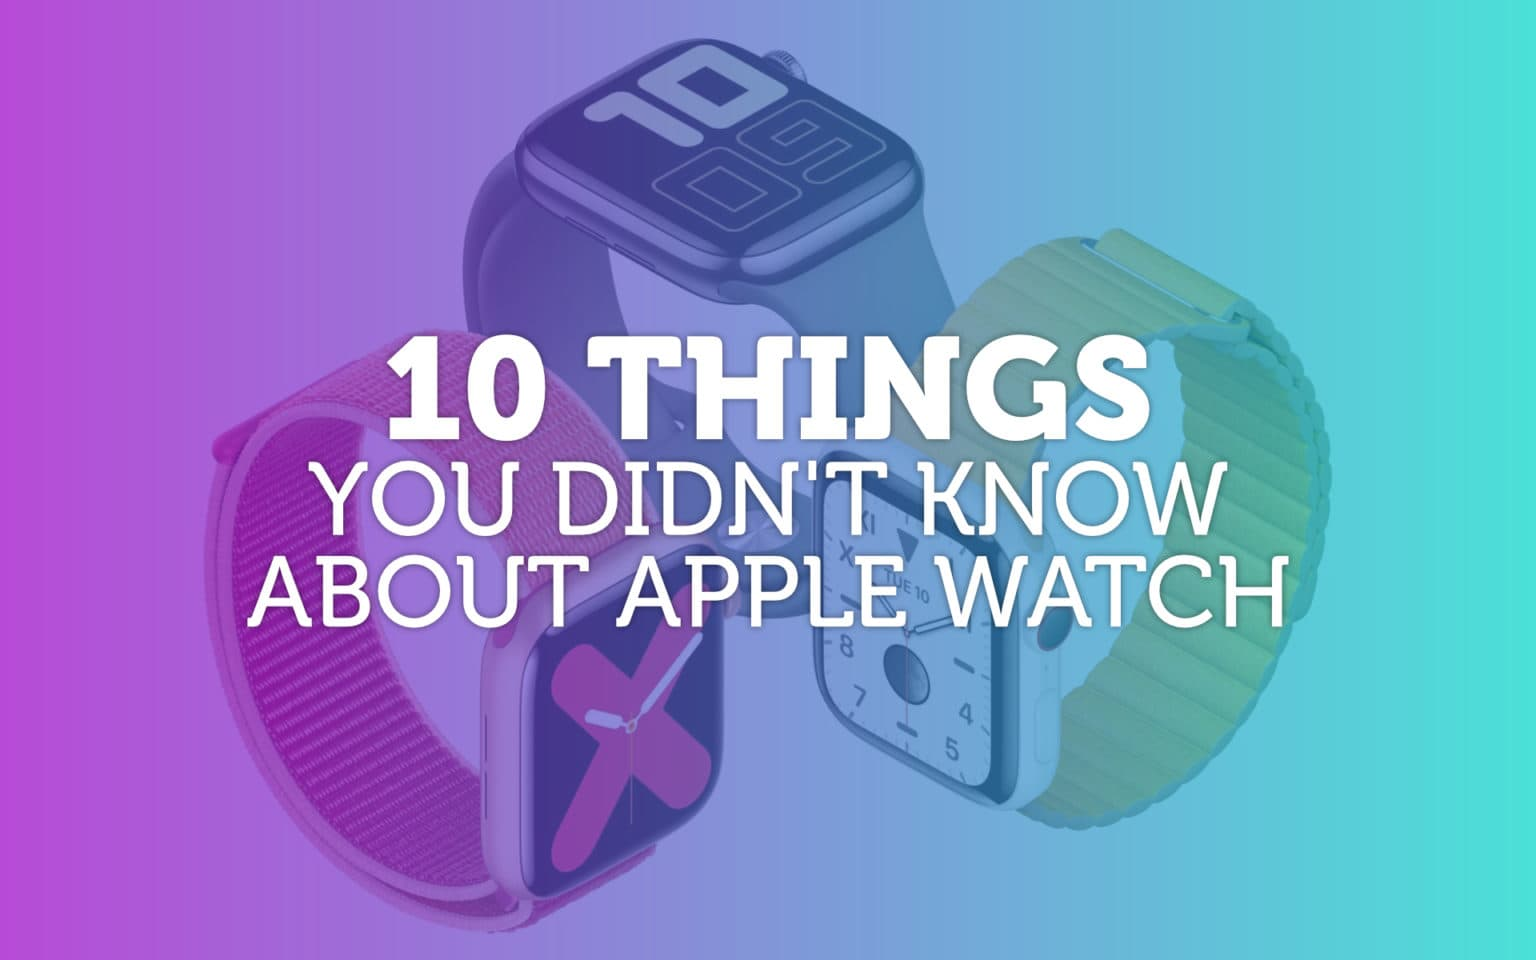 Apple Watch trivia: You can't make this stuff up.